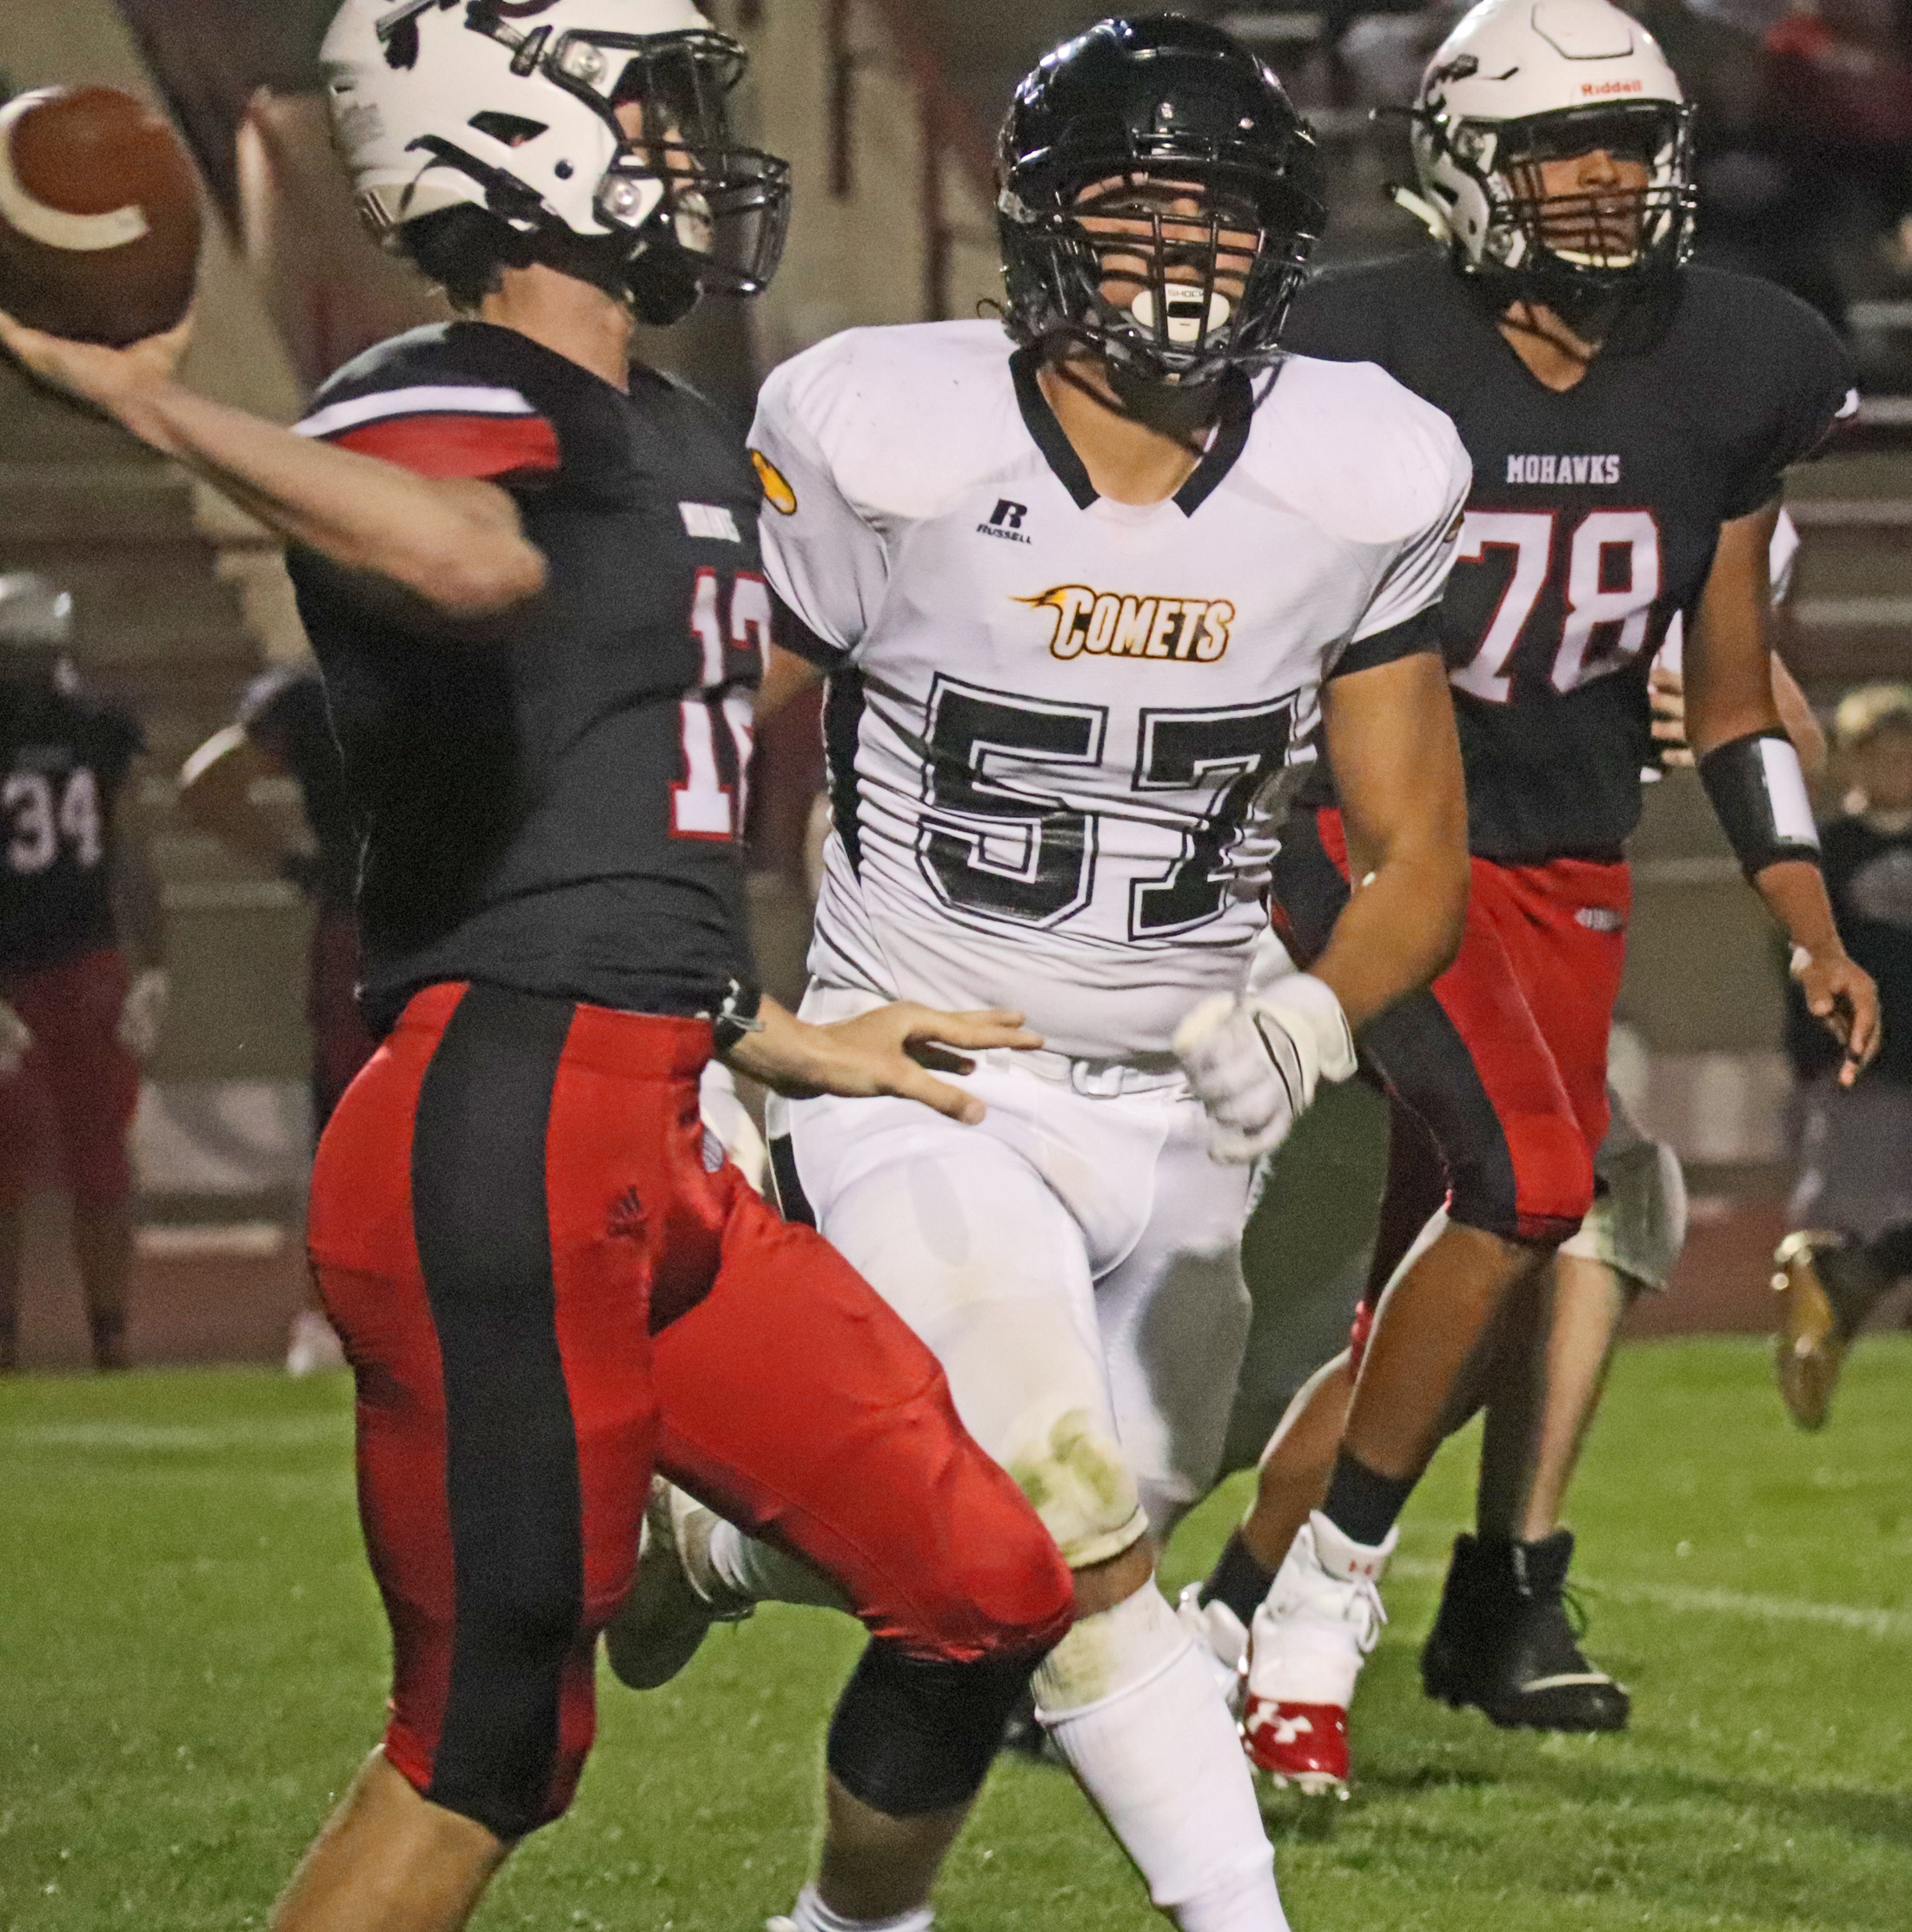 Mohawks roll over Comets 35-0